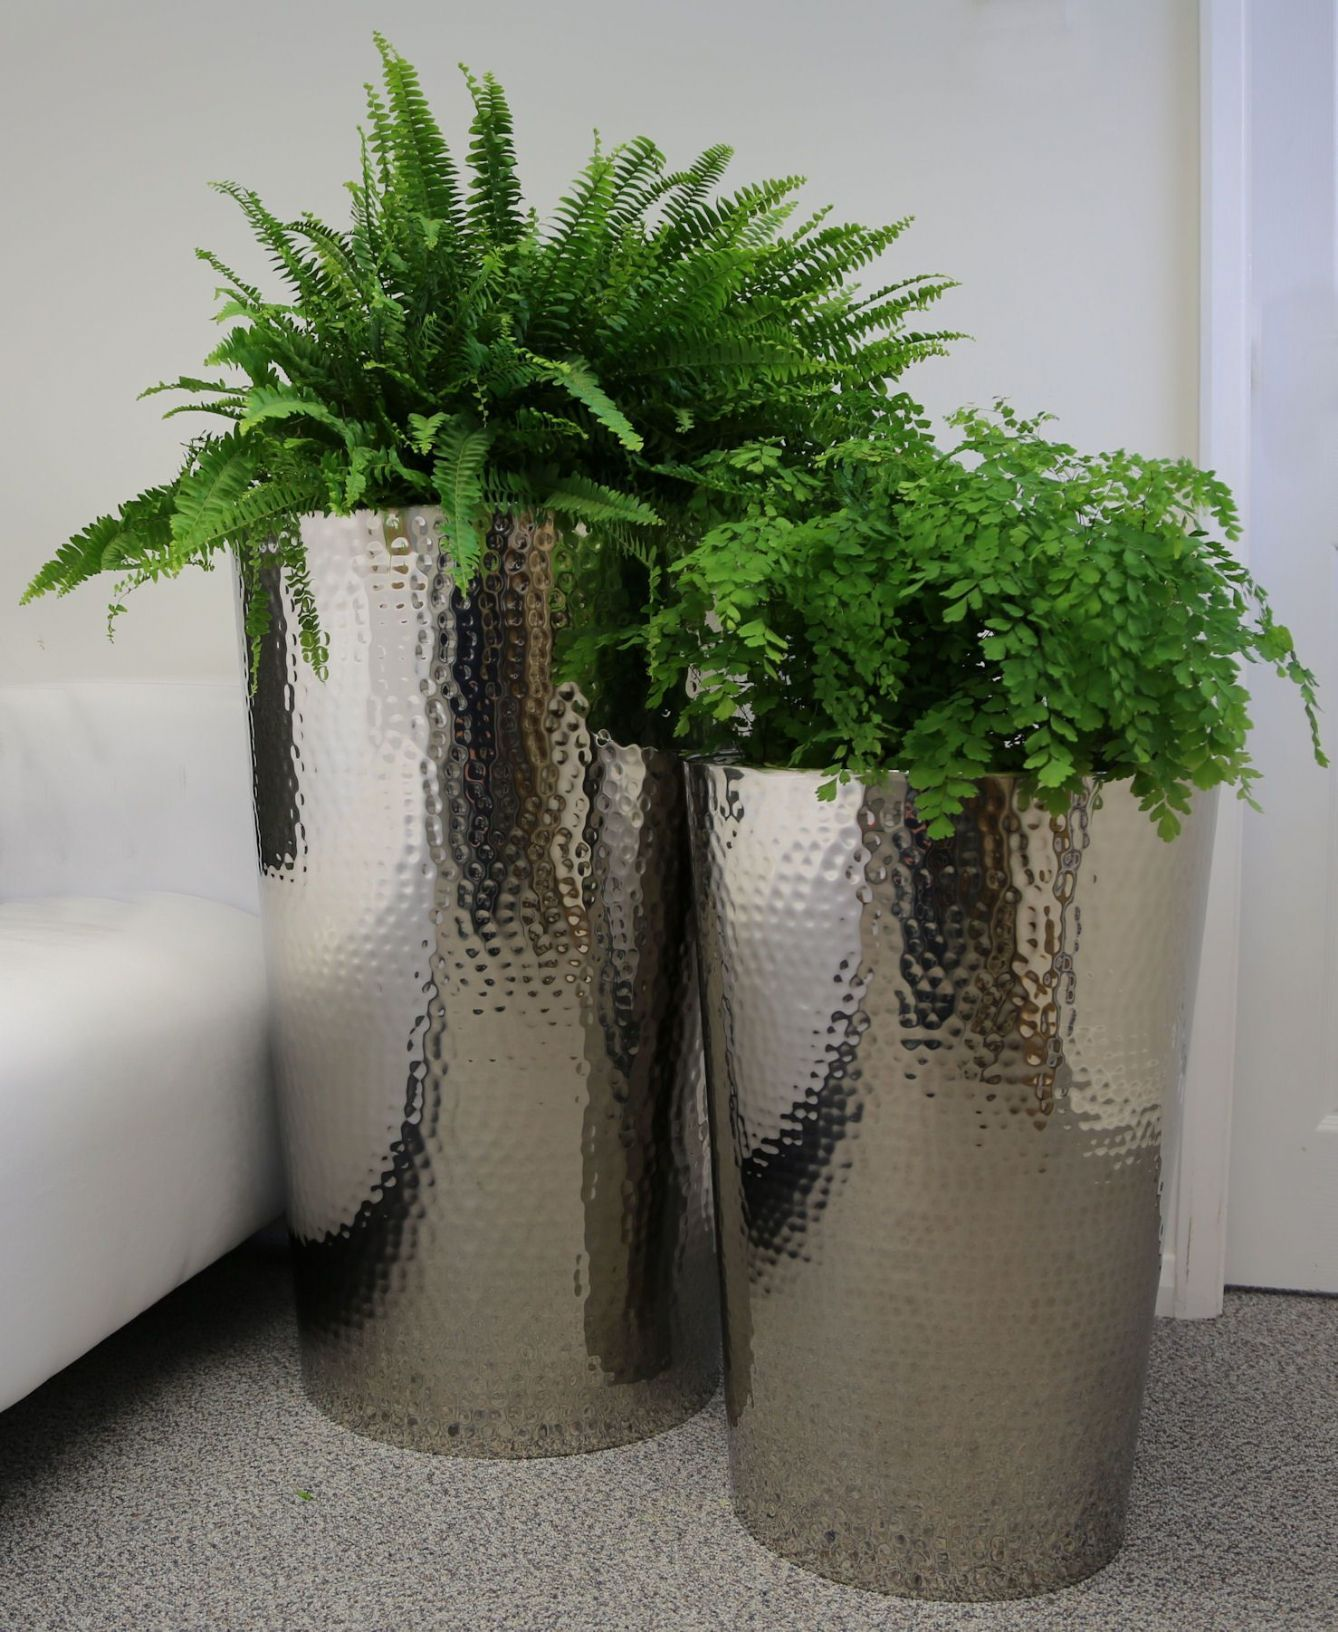 Hammered Stainless Steel Tapered Round Planters From